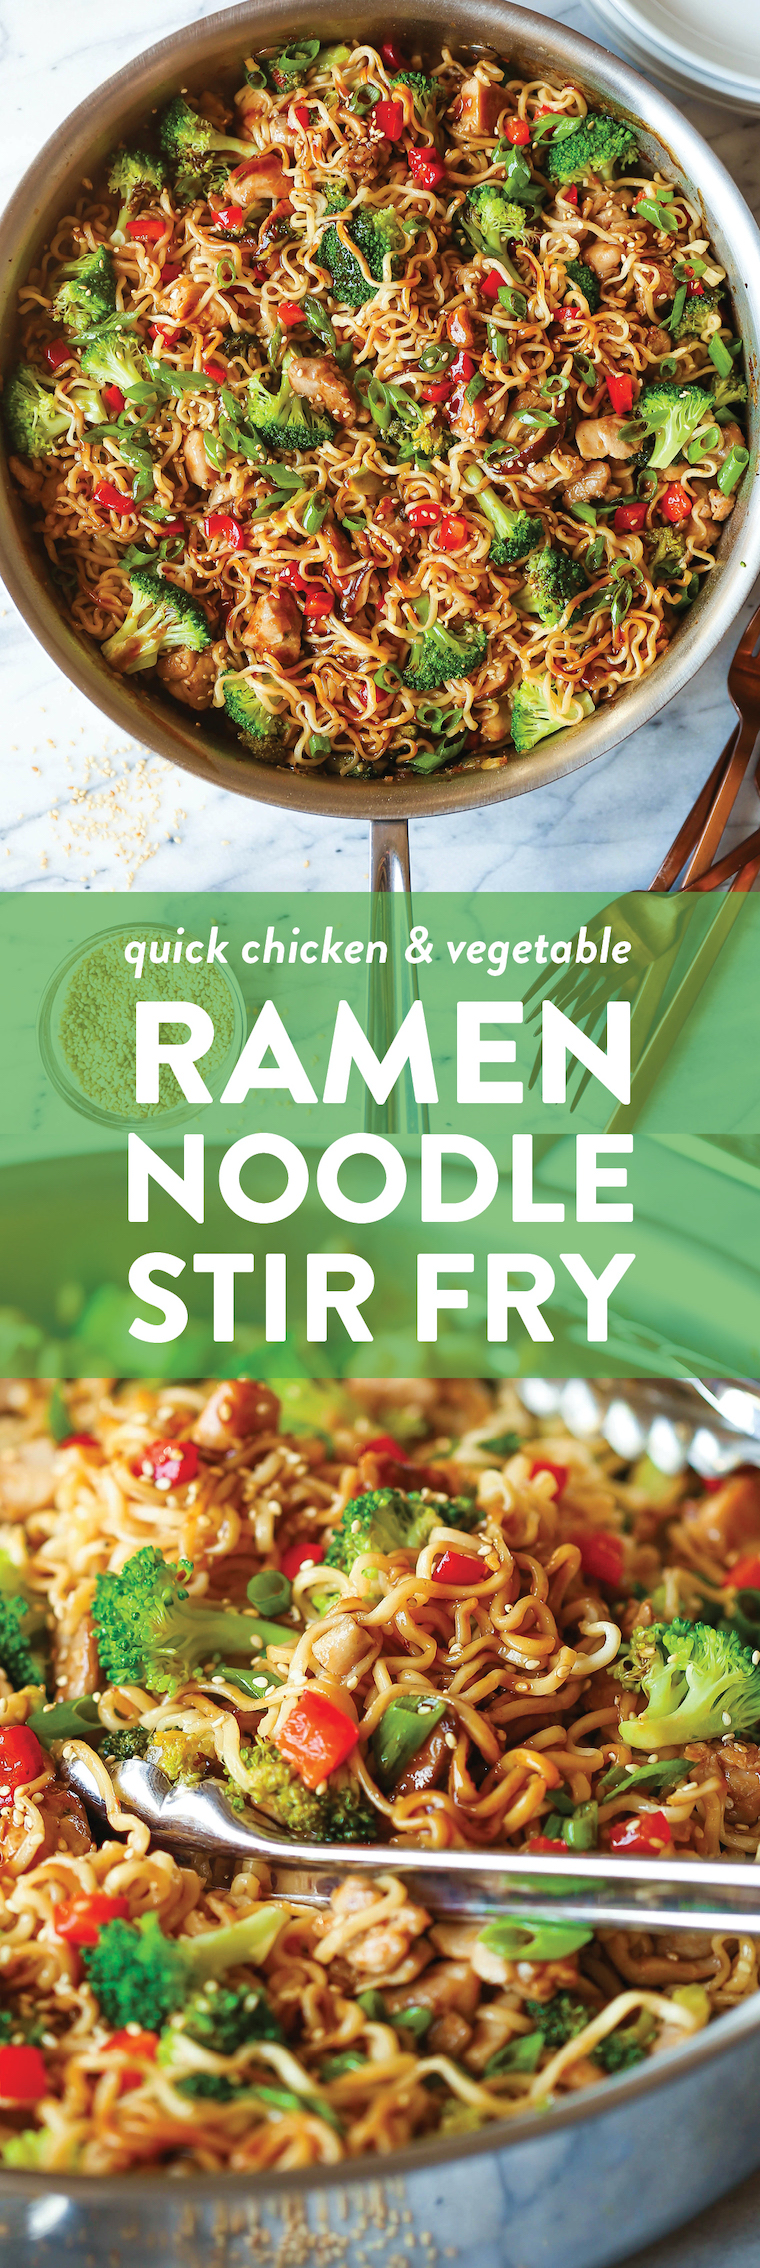 Quick Chicken Ramen Noodle Stir Fry Recipe